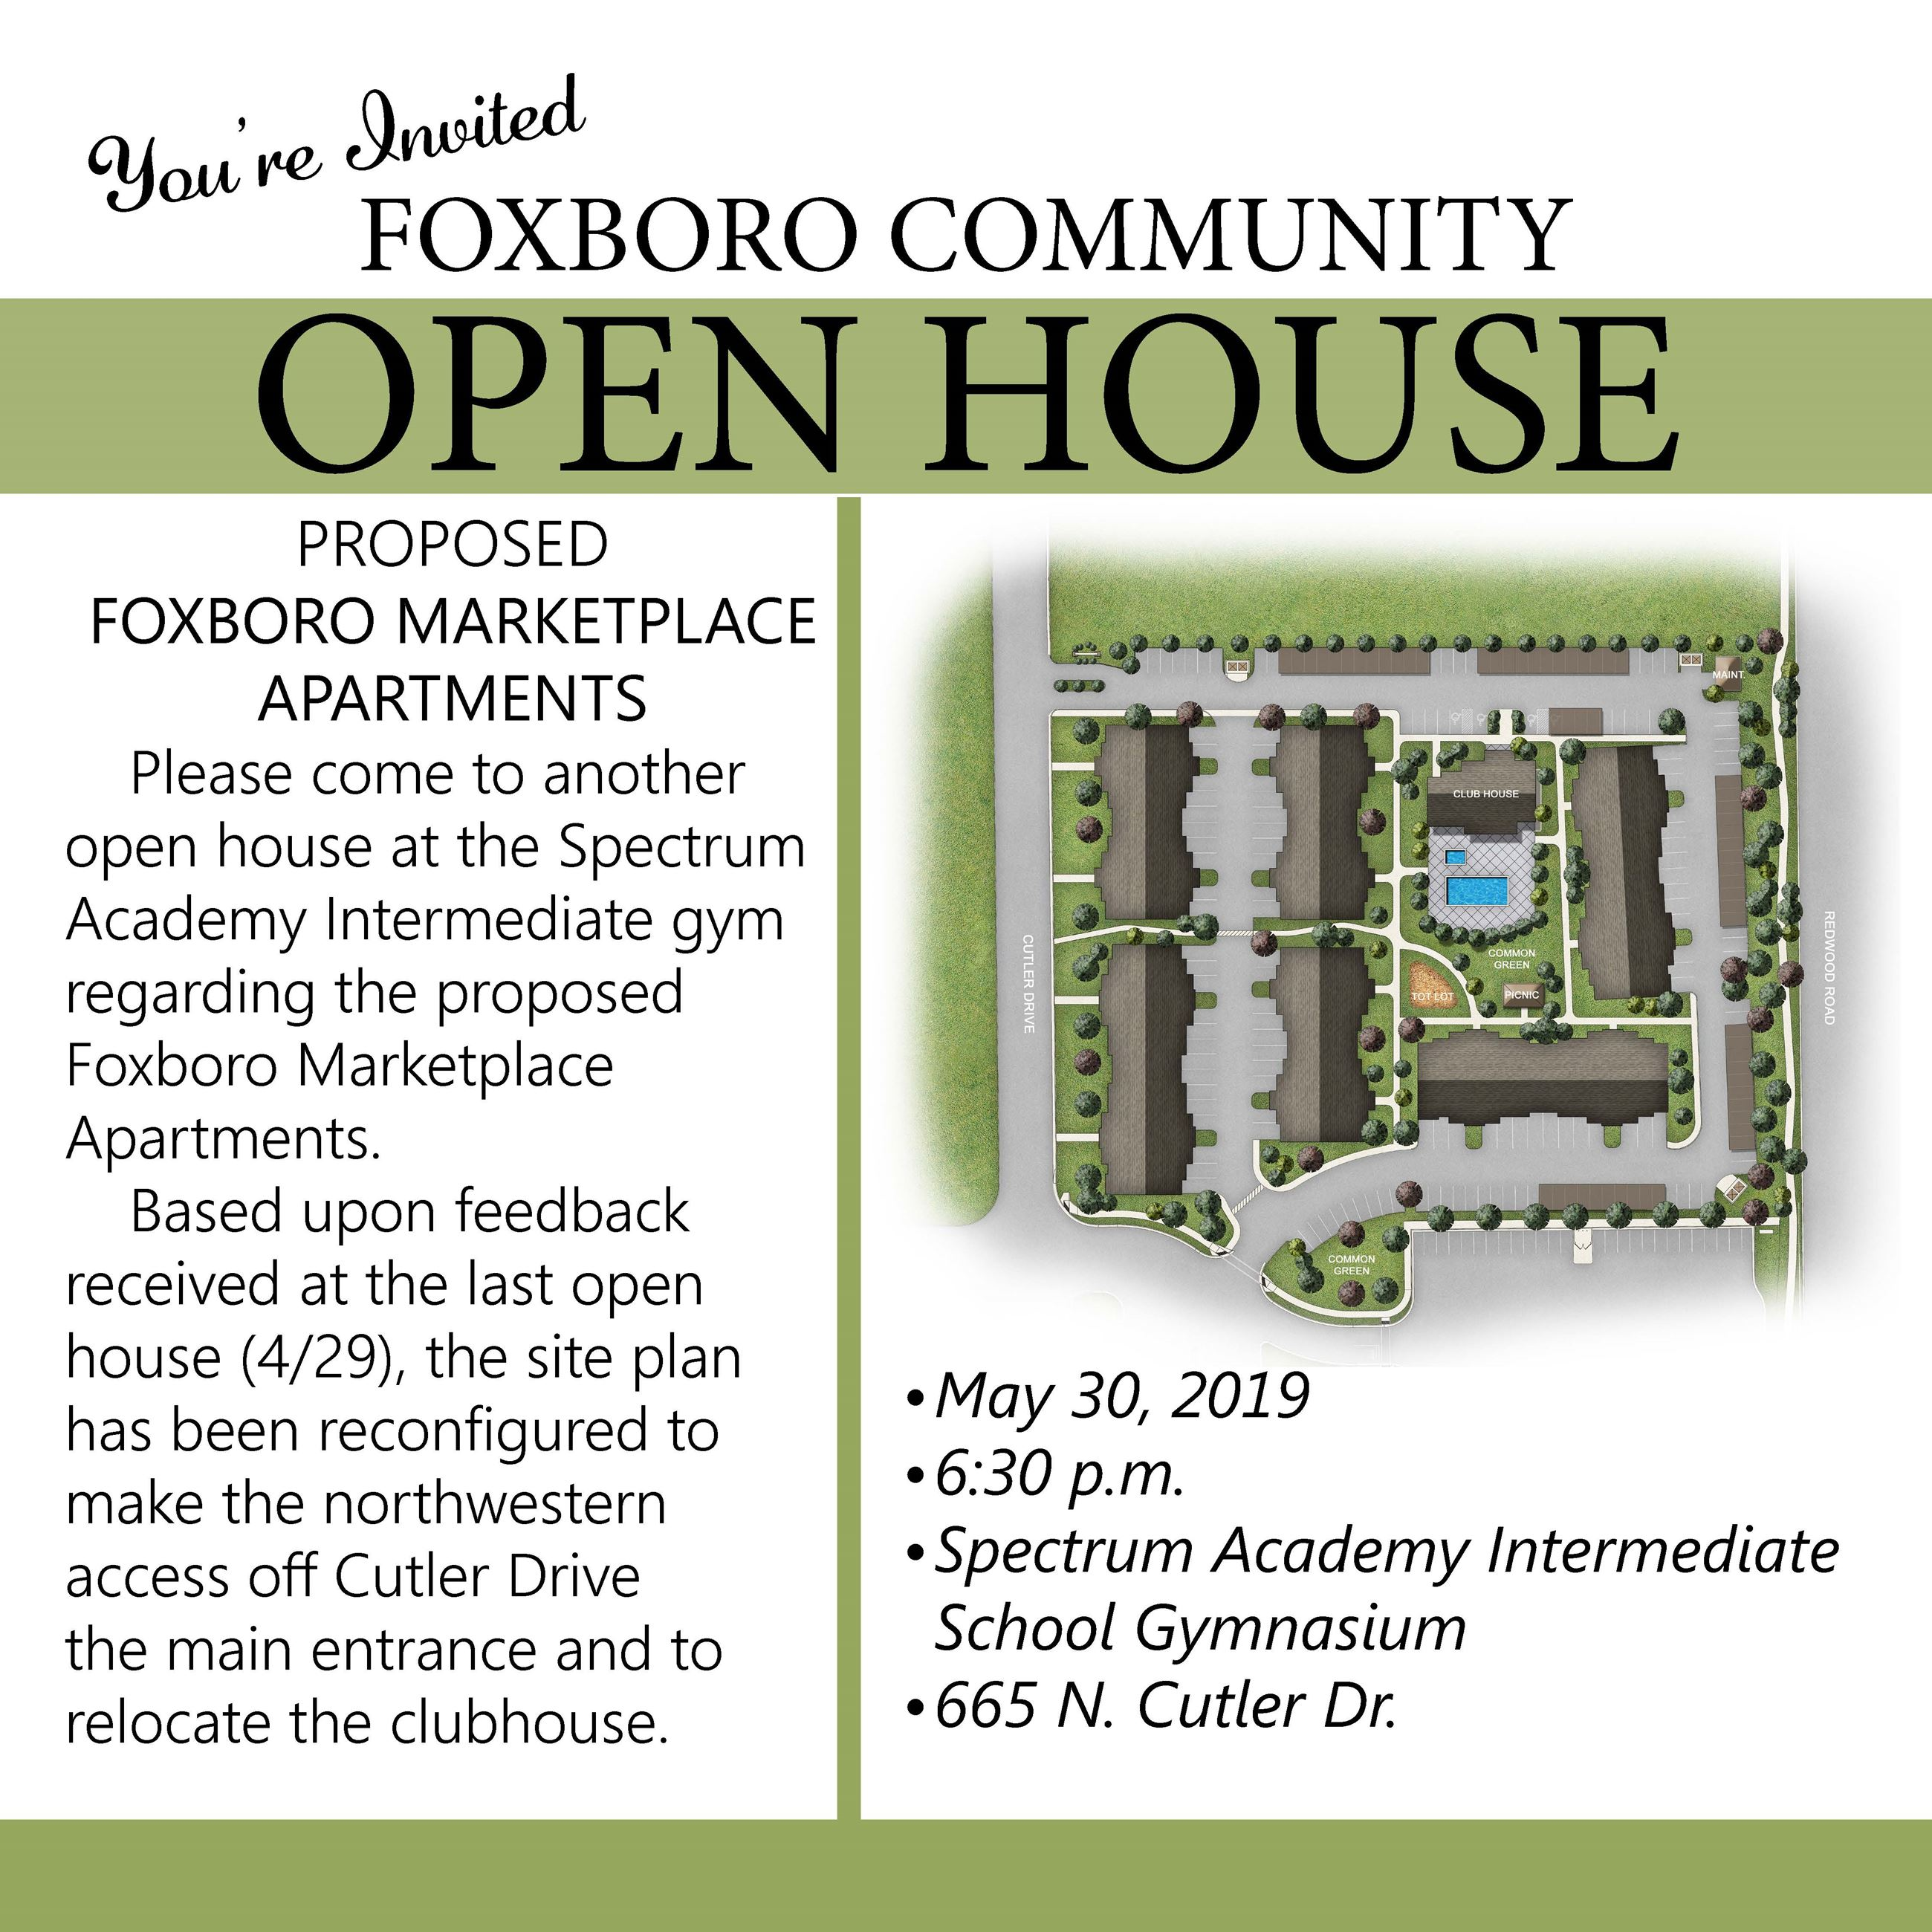 Chris Robinson Open House Foxboro Marketplace Development 5-30-19